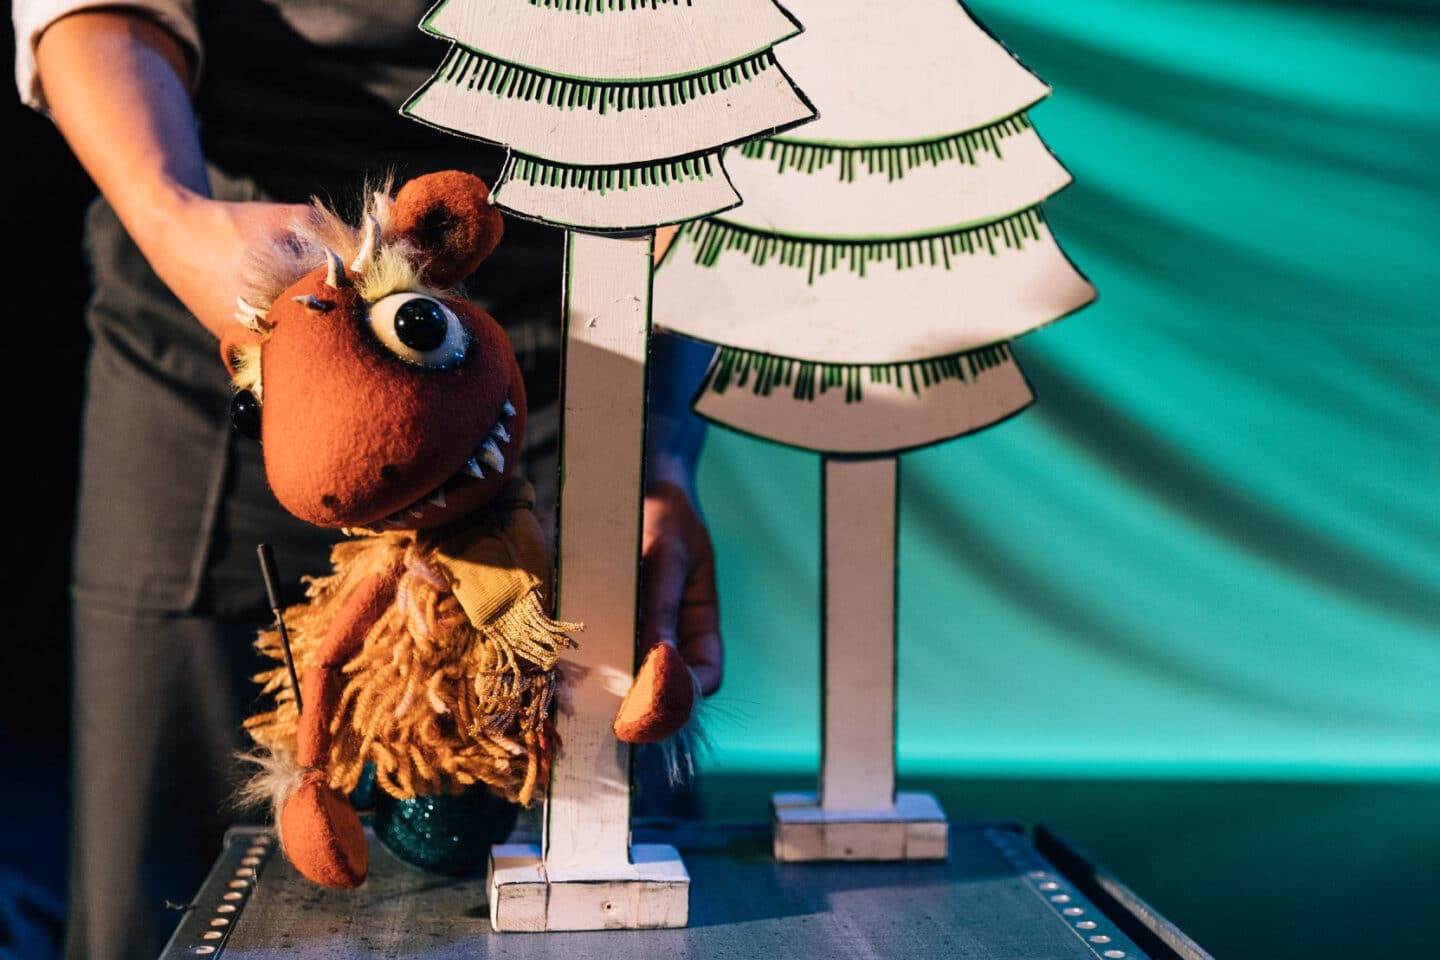 Little Monster - a little orange monster puppet with little horns and spikey teeth holds onto a white cartoon 2d tree. we see the performer/puppeteer in the background